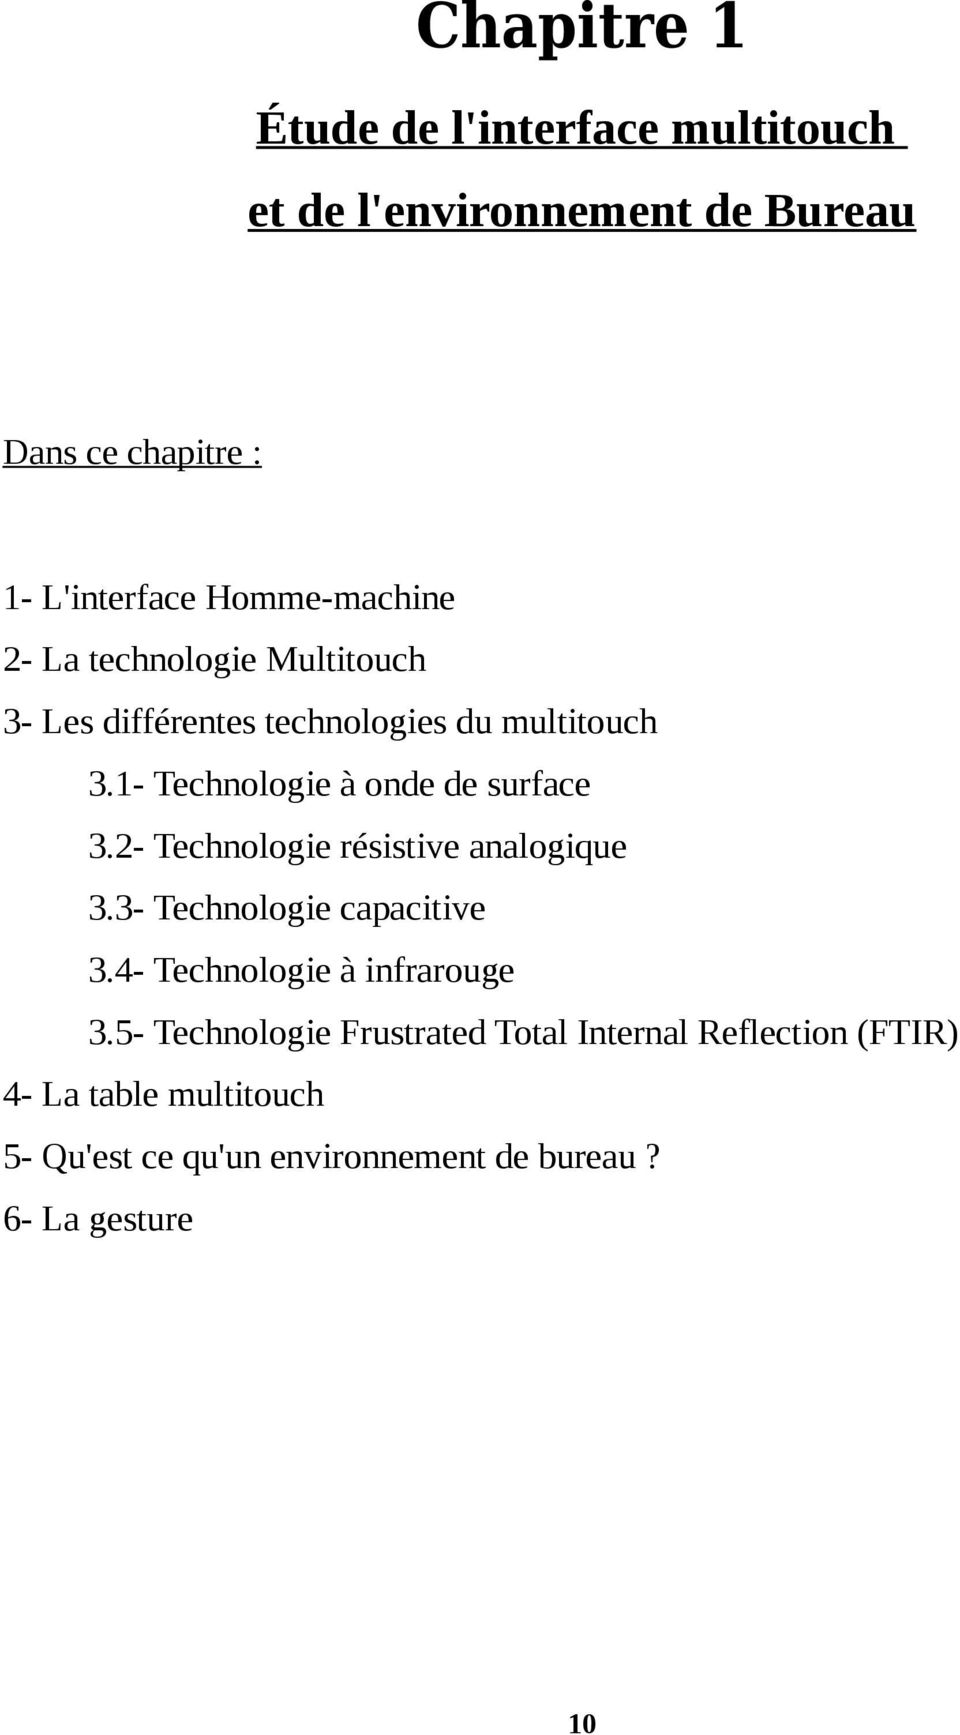 1- Technologie à onde de surface 3.2- Technologie résistive analogique 3.3- Technologie capacitive 3.